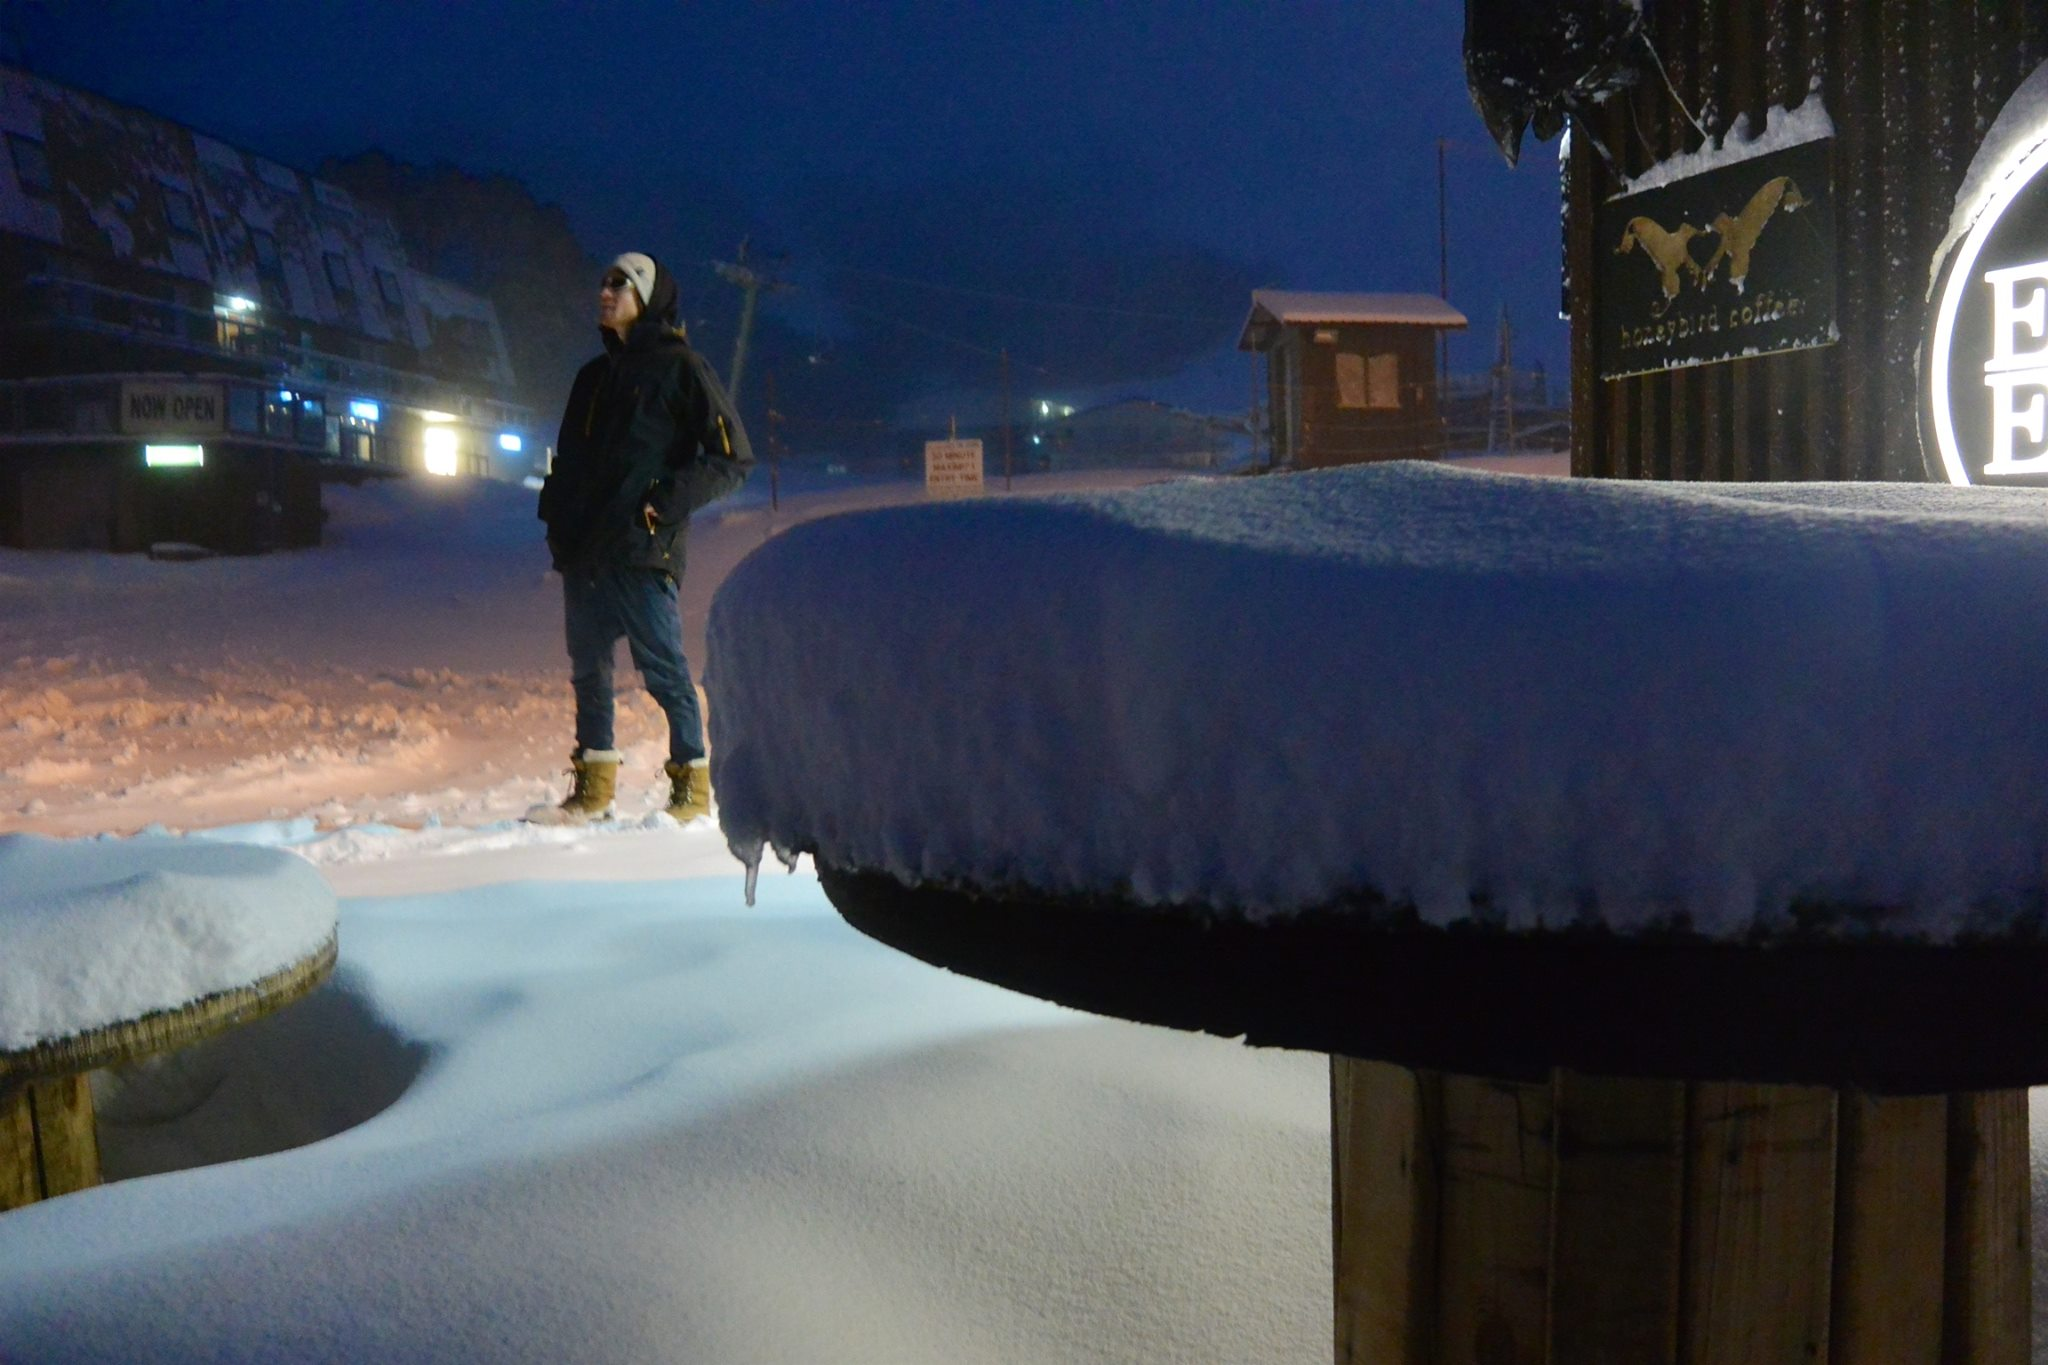 Falls Creek, Australia August 20th. photo: falls creek